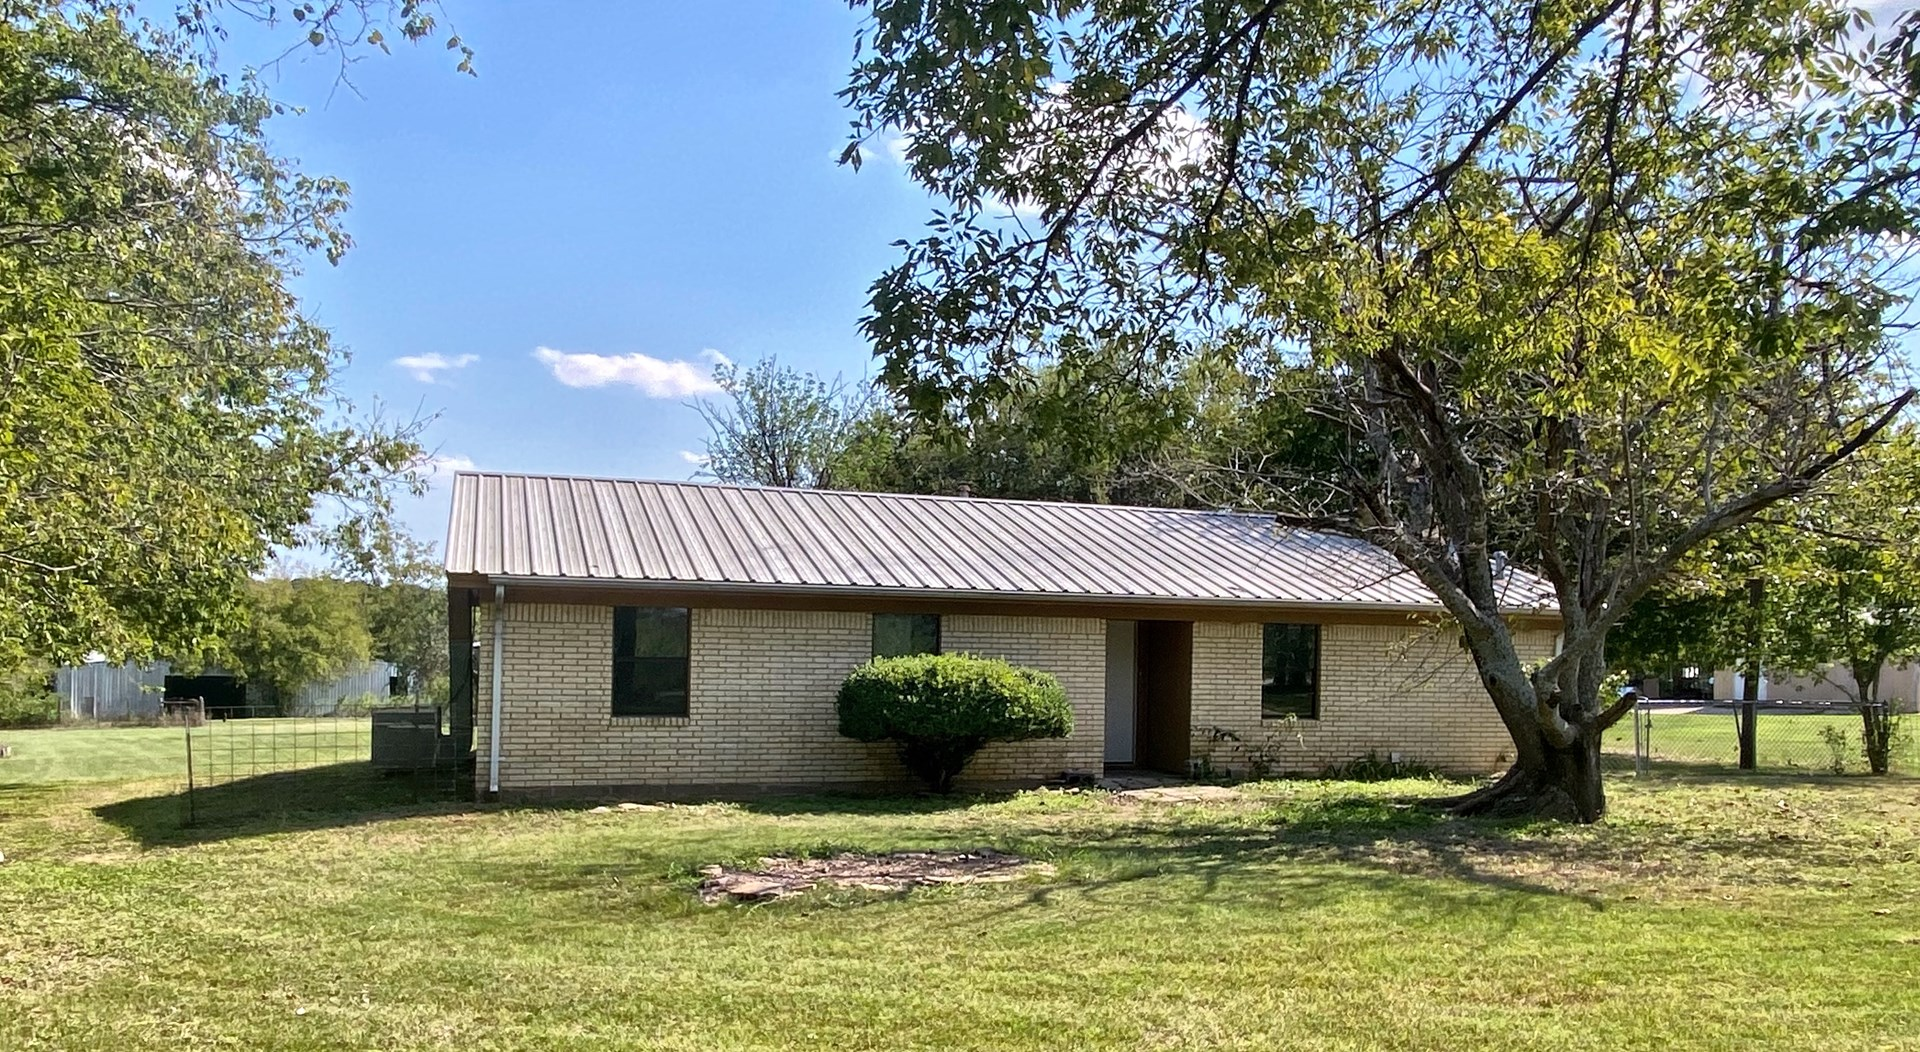 Country Home for Sale in Central Texas on 2+ Acres